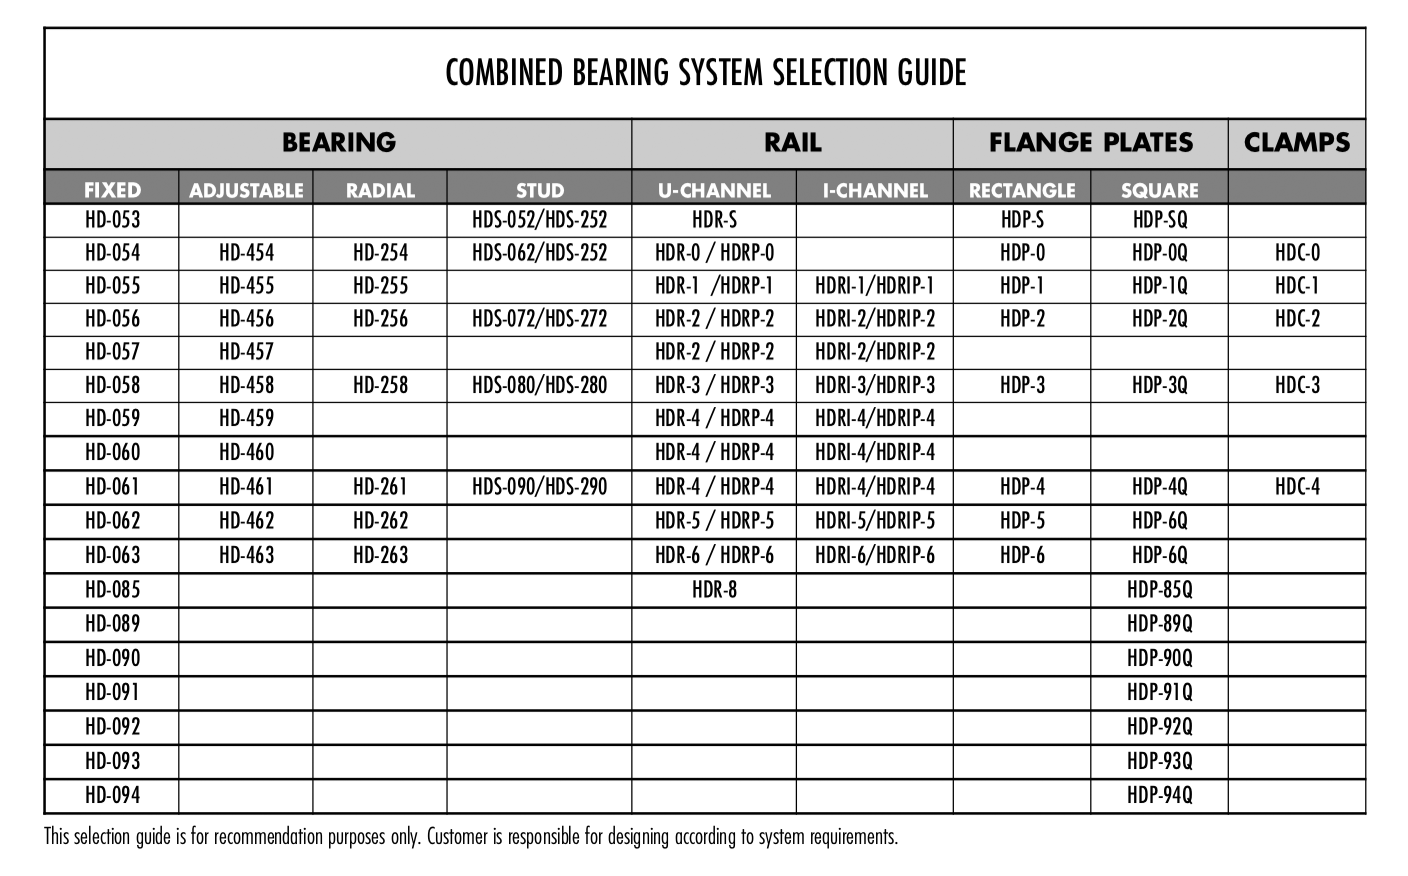 Combined Bearing System Selection Guide